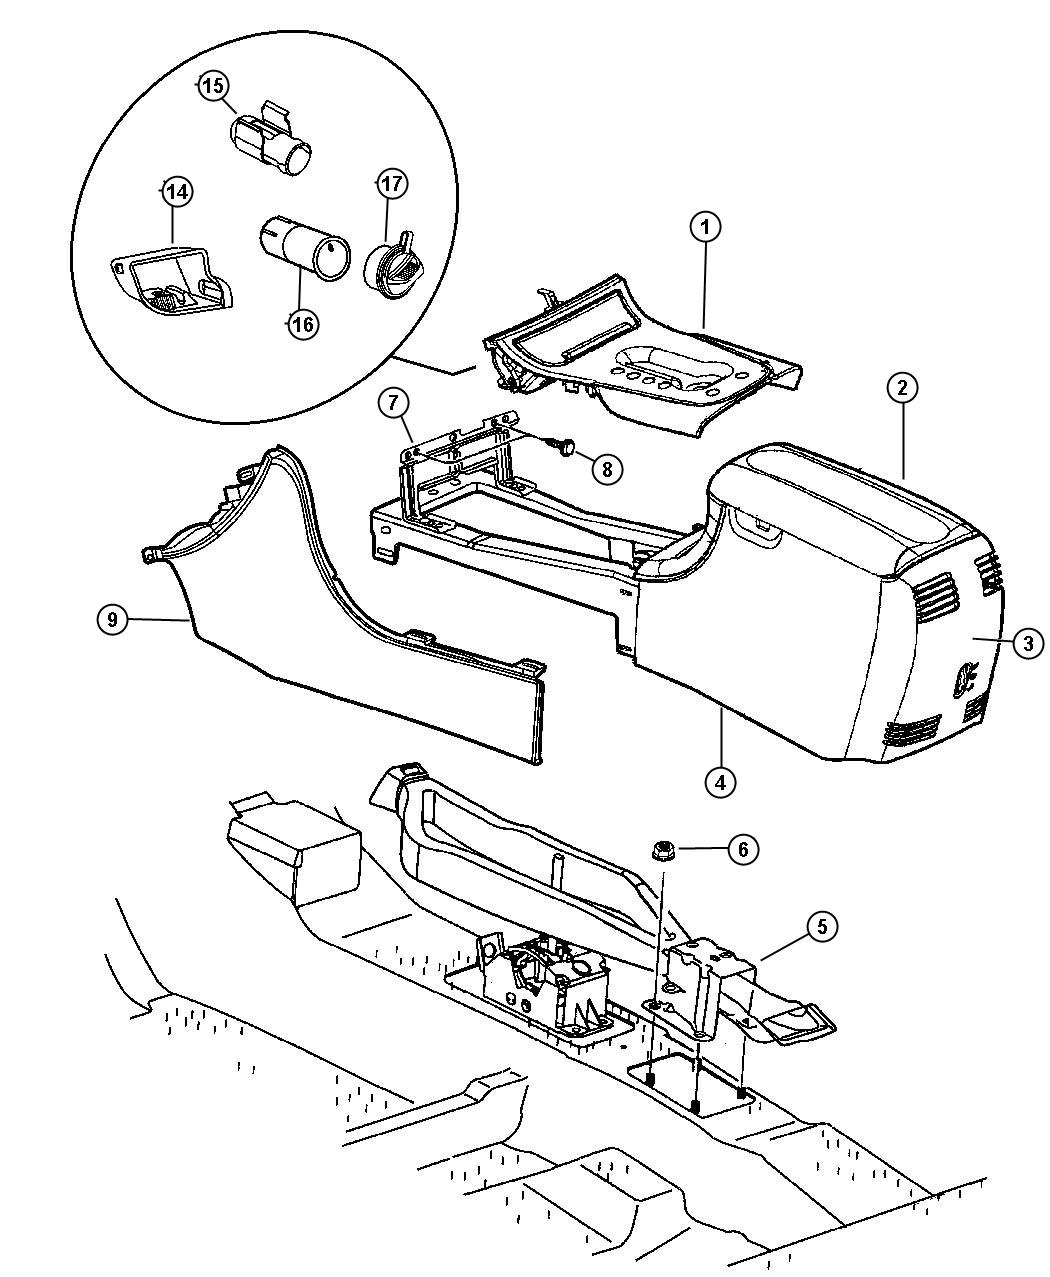 1965 Pontiac Gto Headlight Switch Wiring Diagram together with 2000 Buick Lesabre Fuel Relay in addition CPX 6616 in addition Pontiac Vibe 1 8 1997 Specs And Images together with Gmc K Wiring Diagram Block And Schematic Diagrams C Duramax Seal Wire Center Electrical Chevy Topkick. on 1973 pontiac grand prix